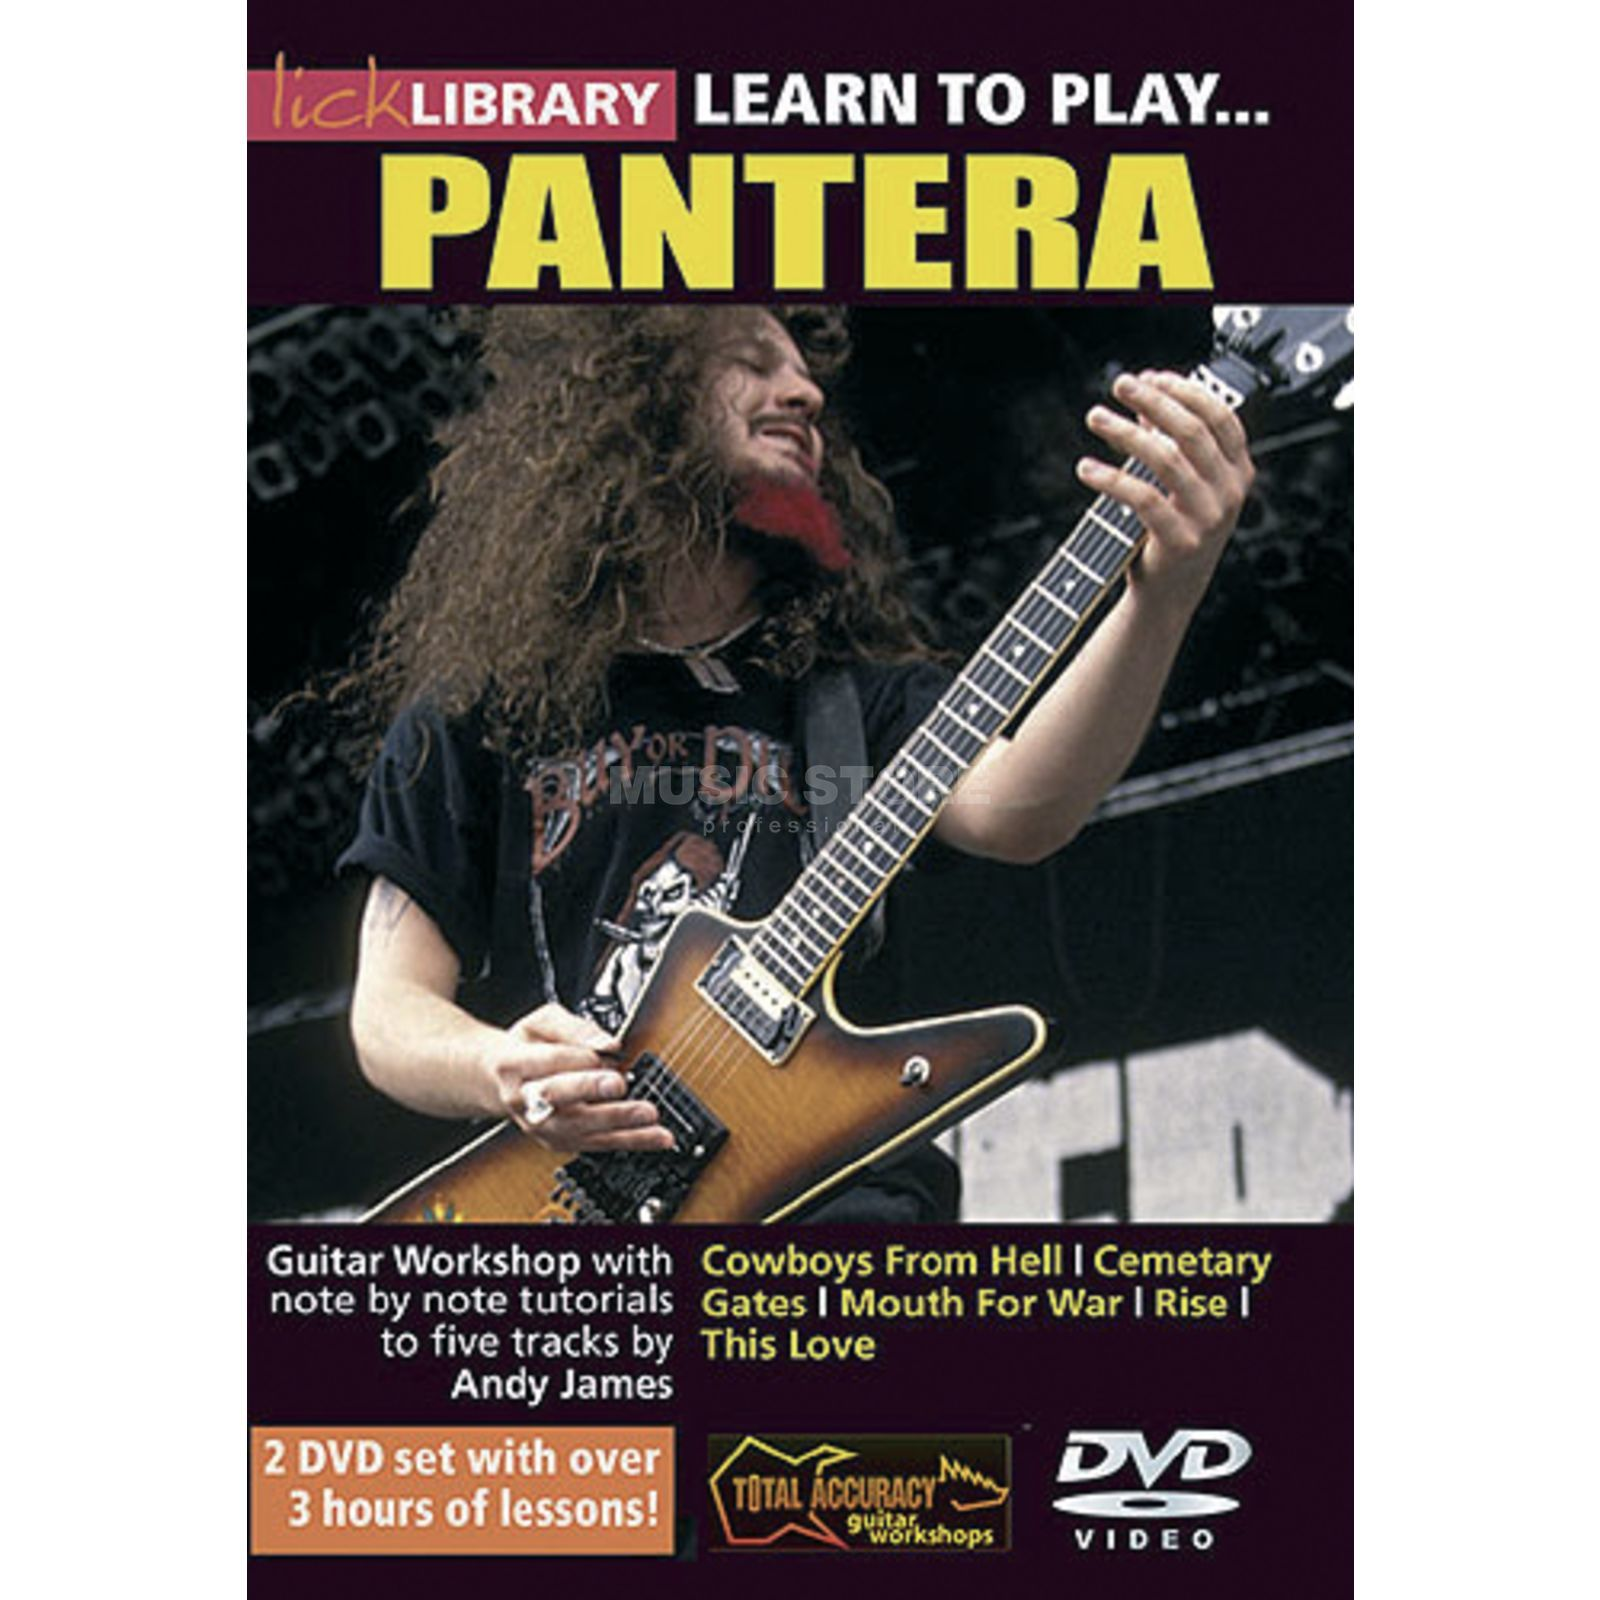 Roadrock International Lick Library: Learn To Play Pantera DVD Produktbild